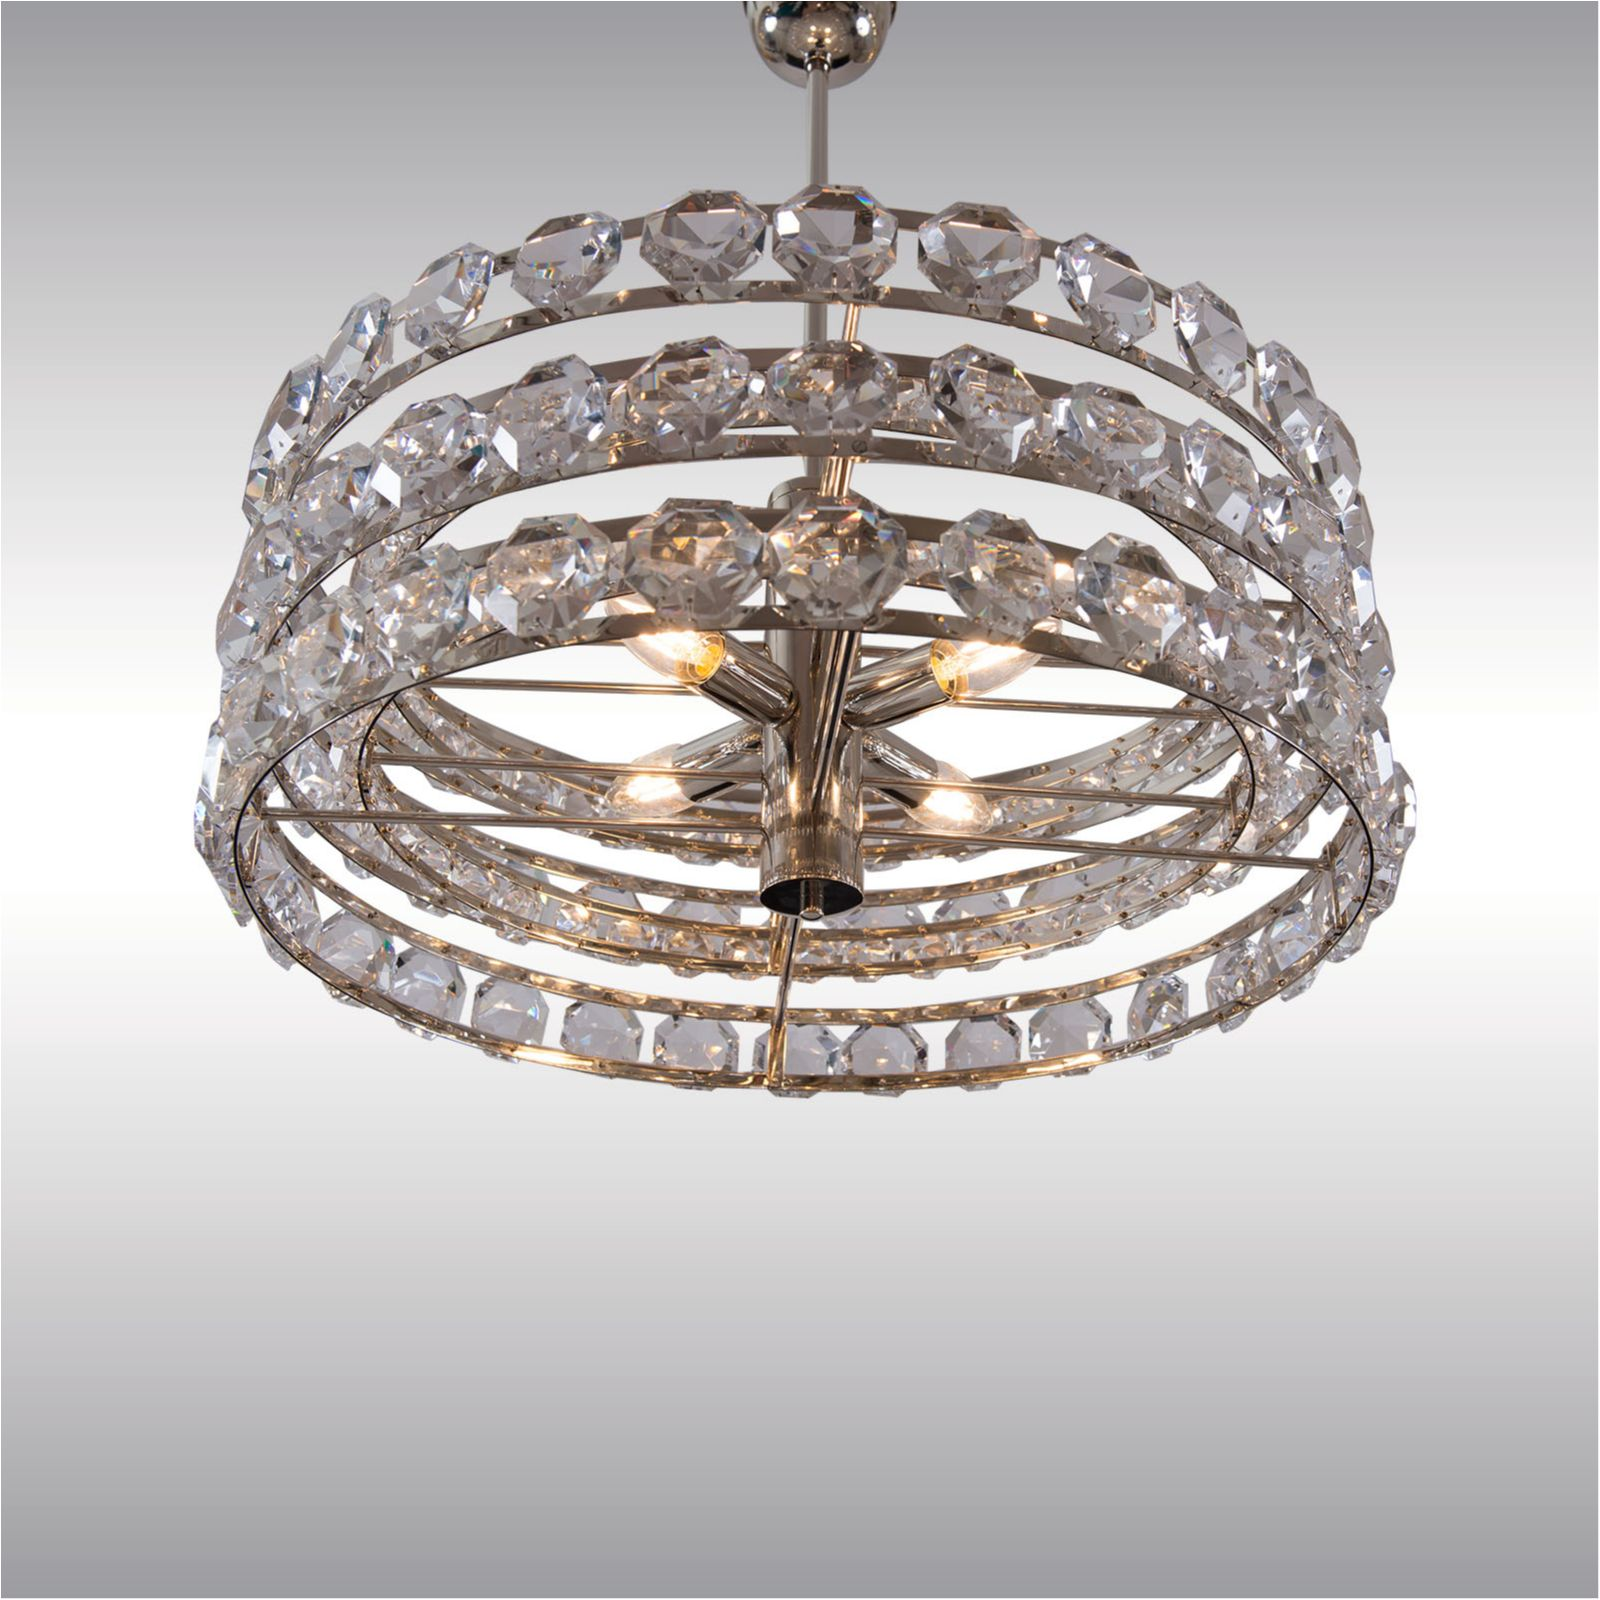 Image of: Mid Century Modern Crystal Chandelier By Woka Lamps Vienna